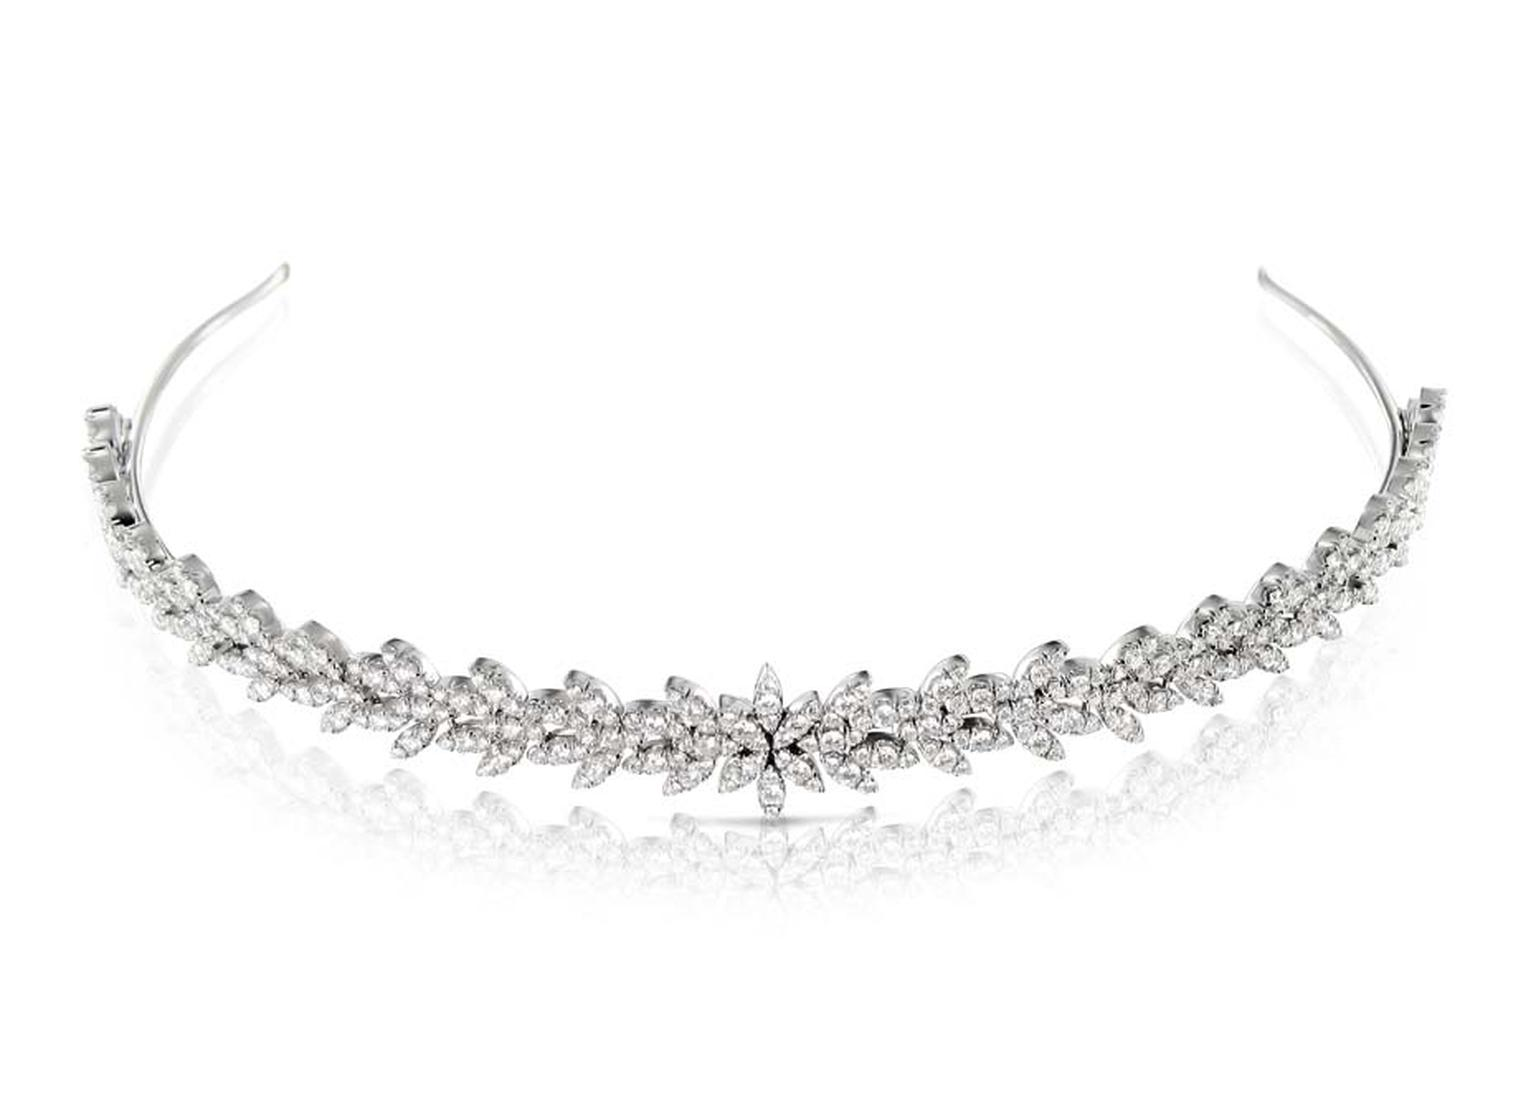 Pasquale Bruni's Ghirlanda diamond-set white gold tiara.